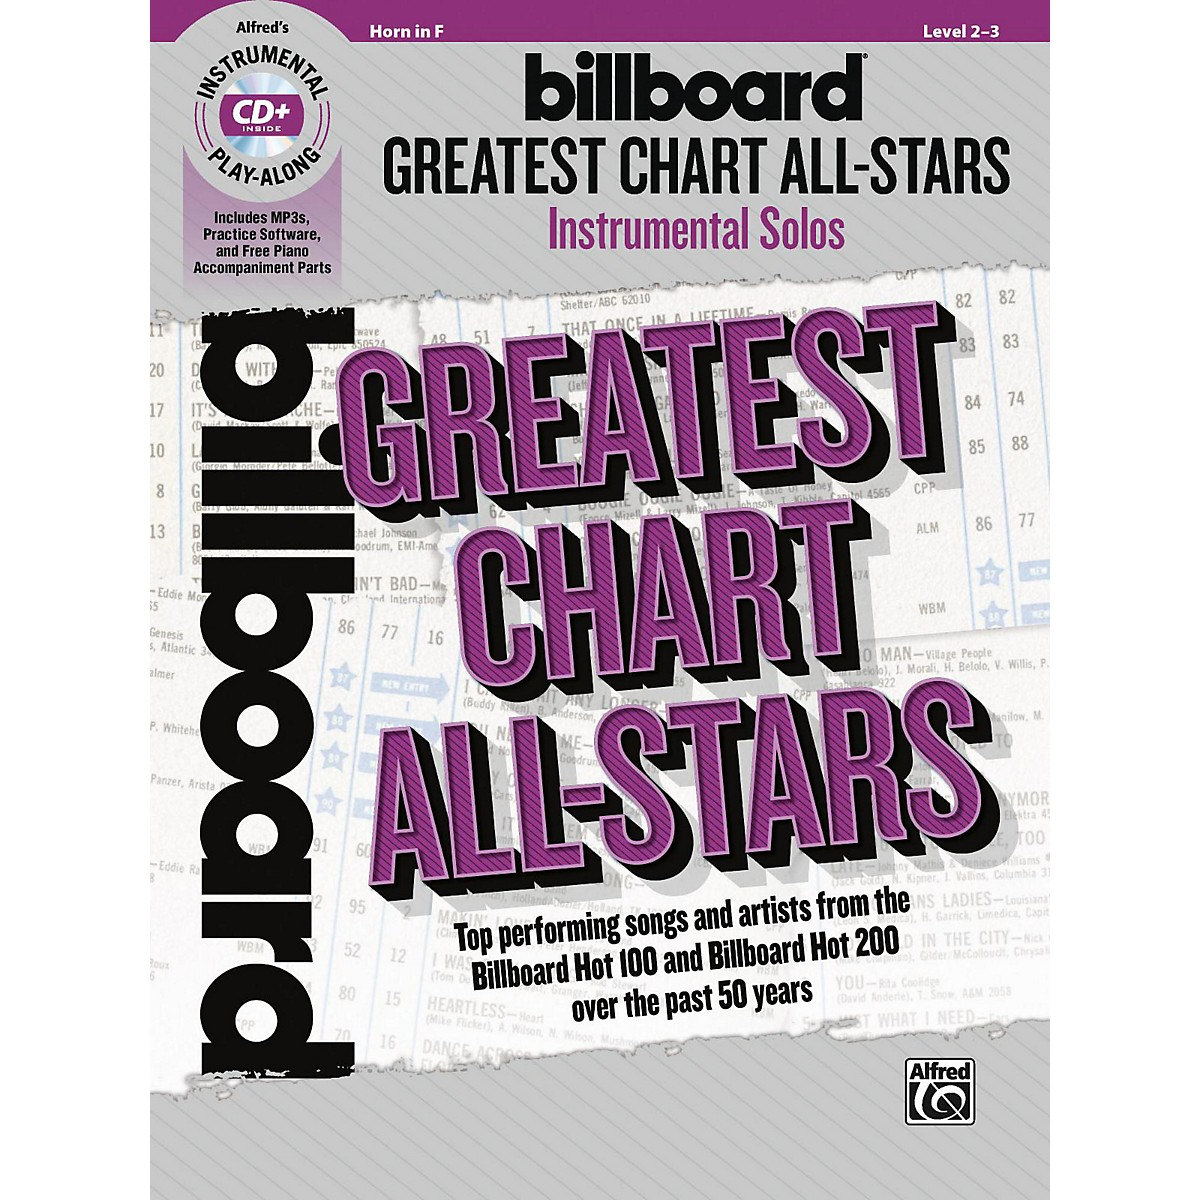 Alfred Billboard Greatest Chart All-Stars Instrumental Solos Horn in F Book & CD Level 2-3